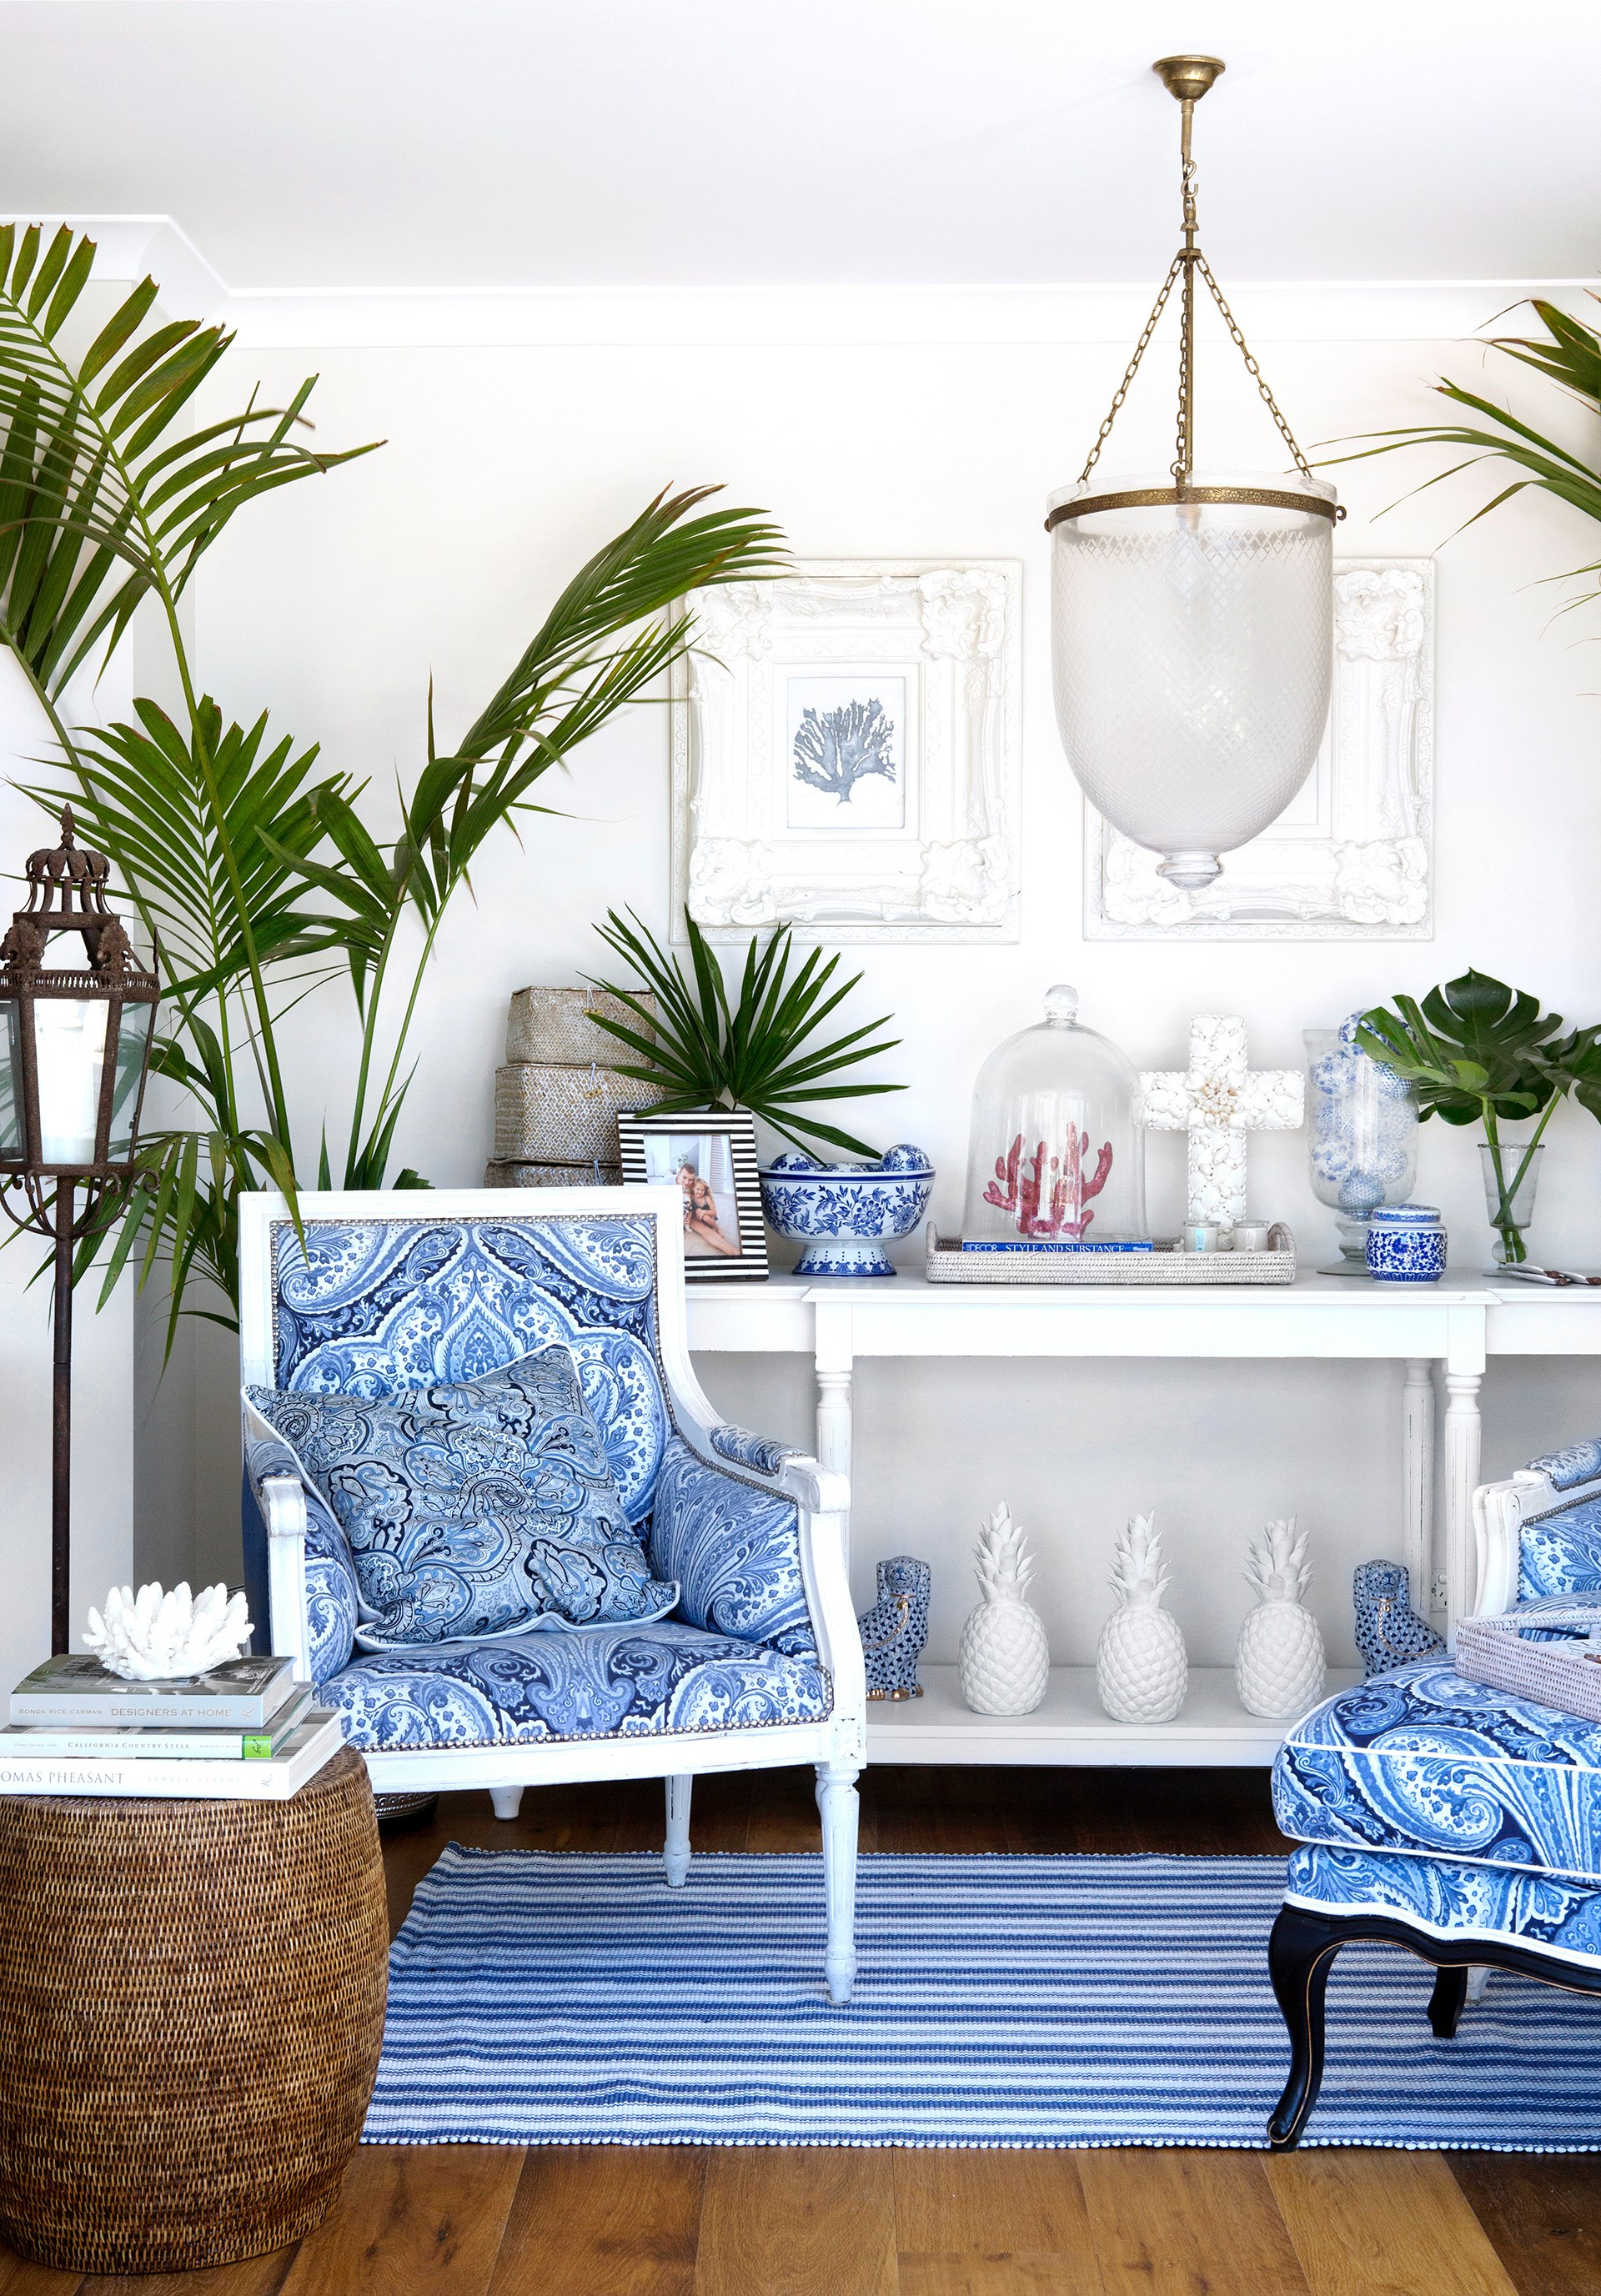 """Natalee had antique armchairs repainted and upholstered in blue-and-white fabrics that reference her collection of classic ceramics.   Rattan **stools** from [Mandalay Designs](http://mandalaydesigns.com.au/?utm_campaign=supplier/